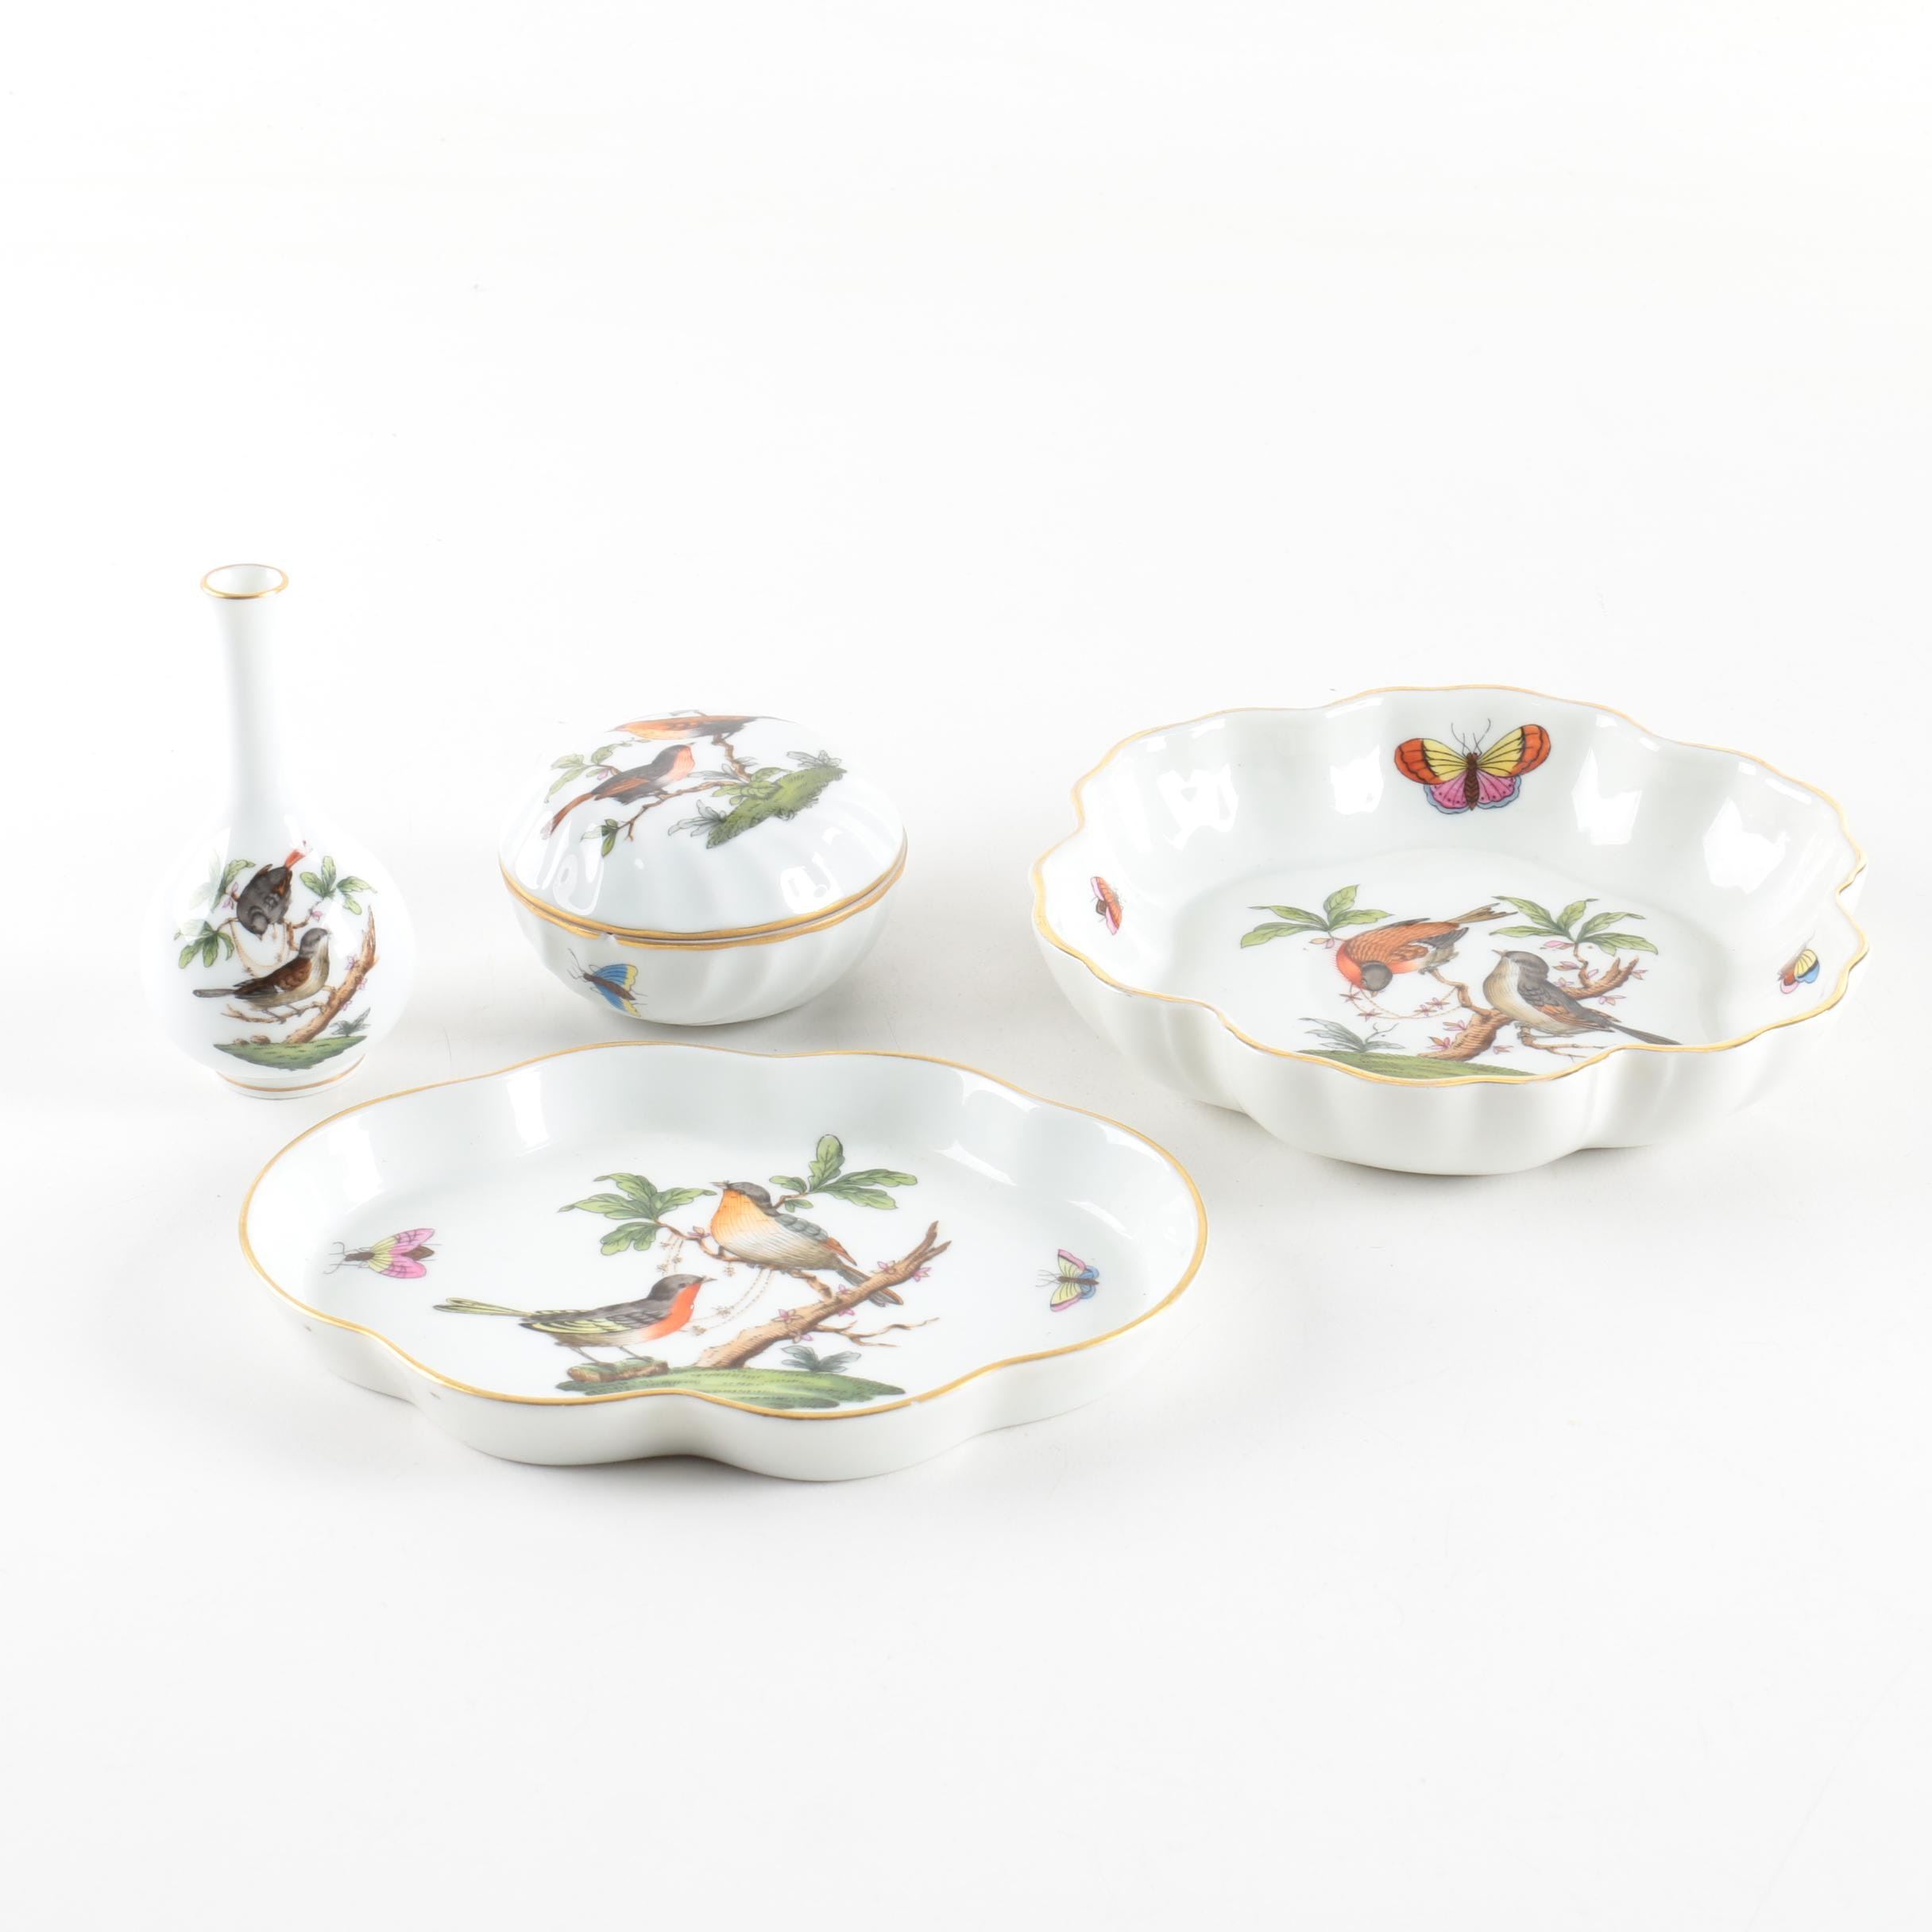 "Herend Hungary ""Rothschild Bird"" Porcelain Dishes and Vase"